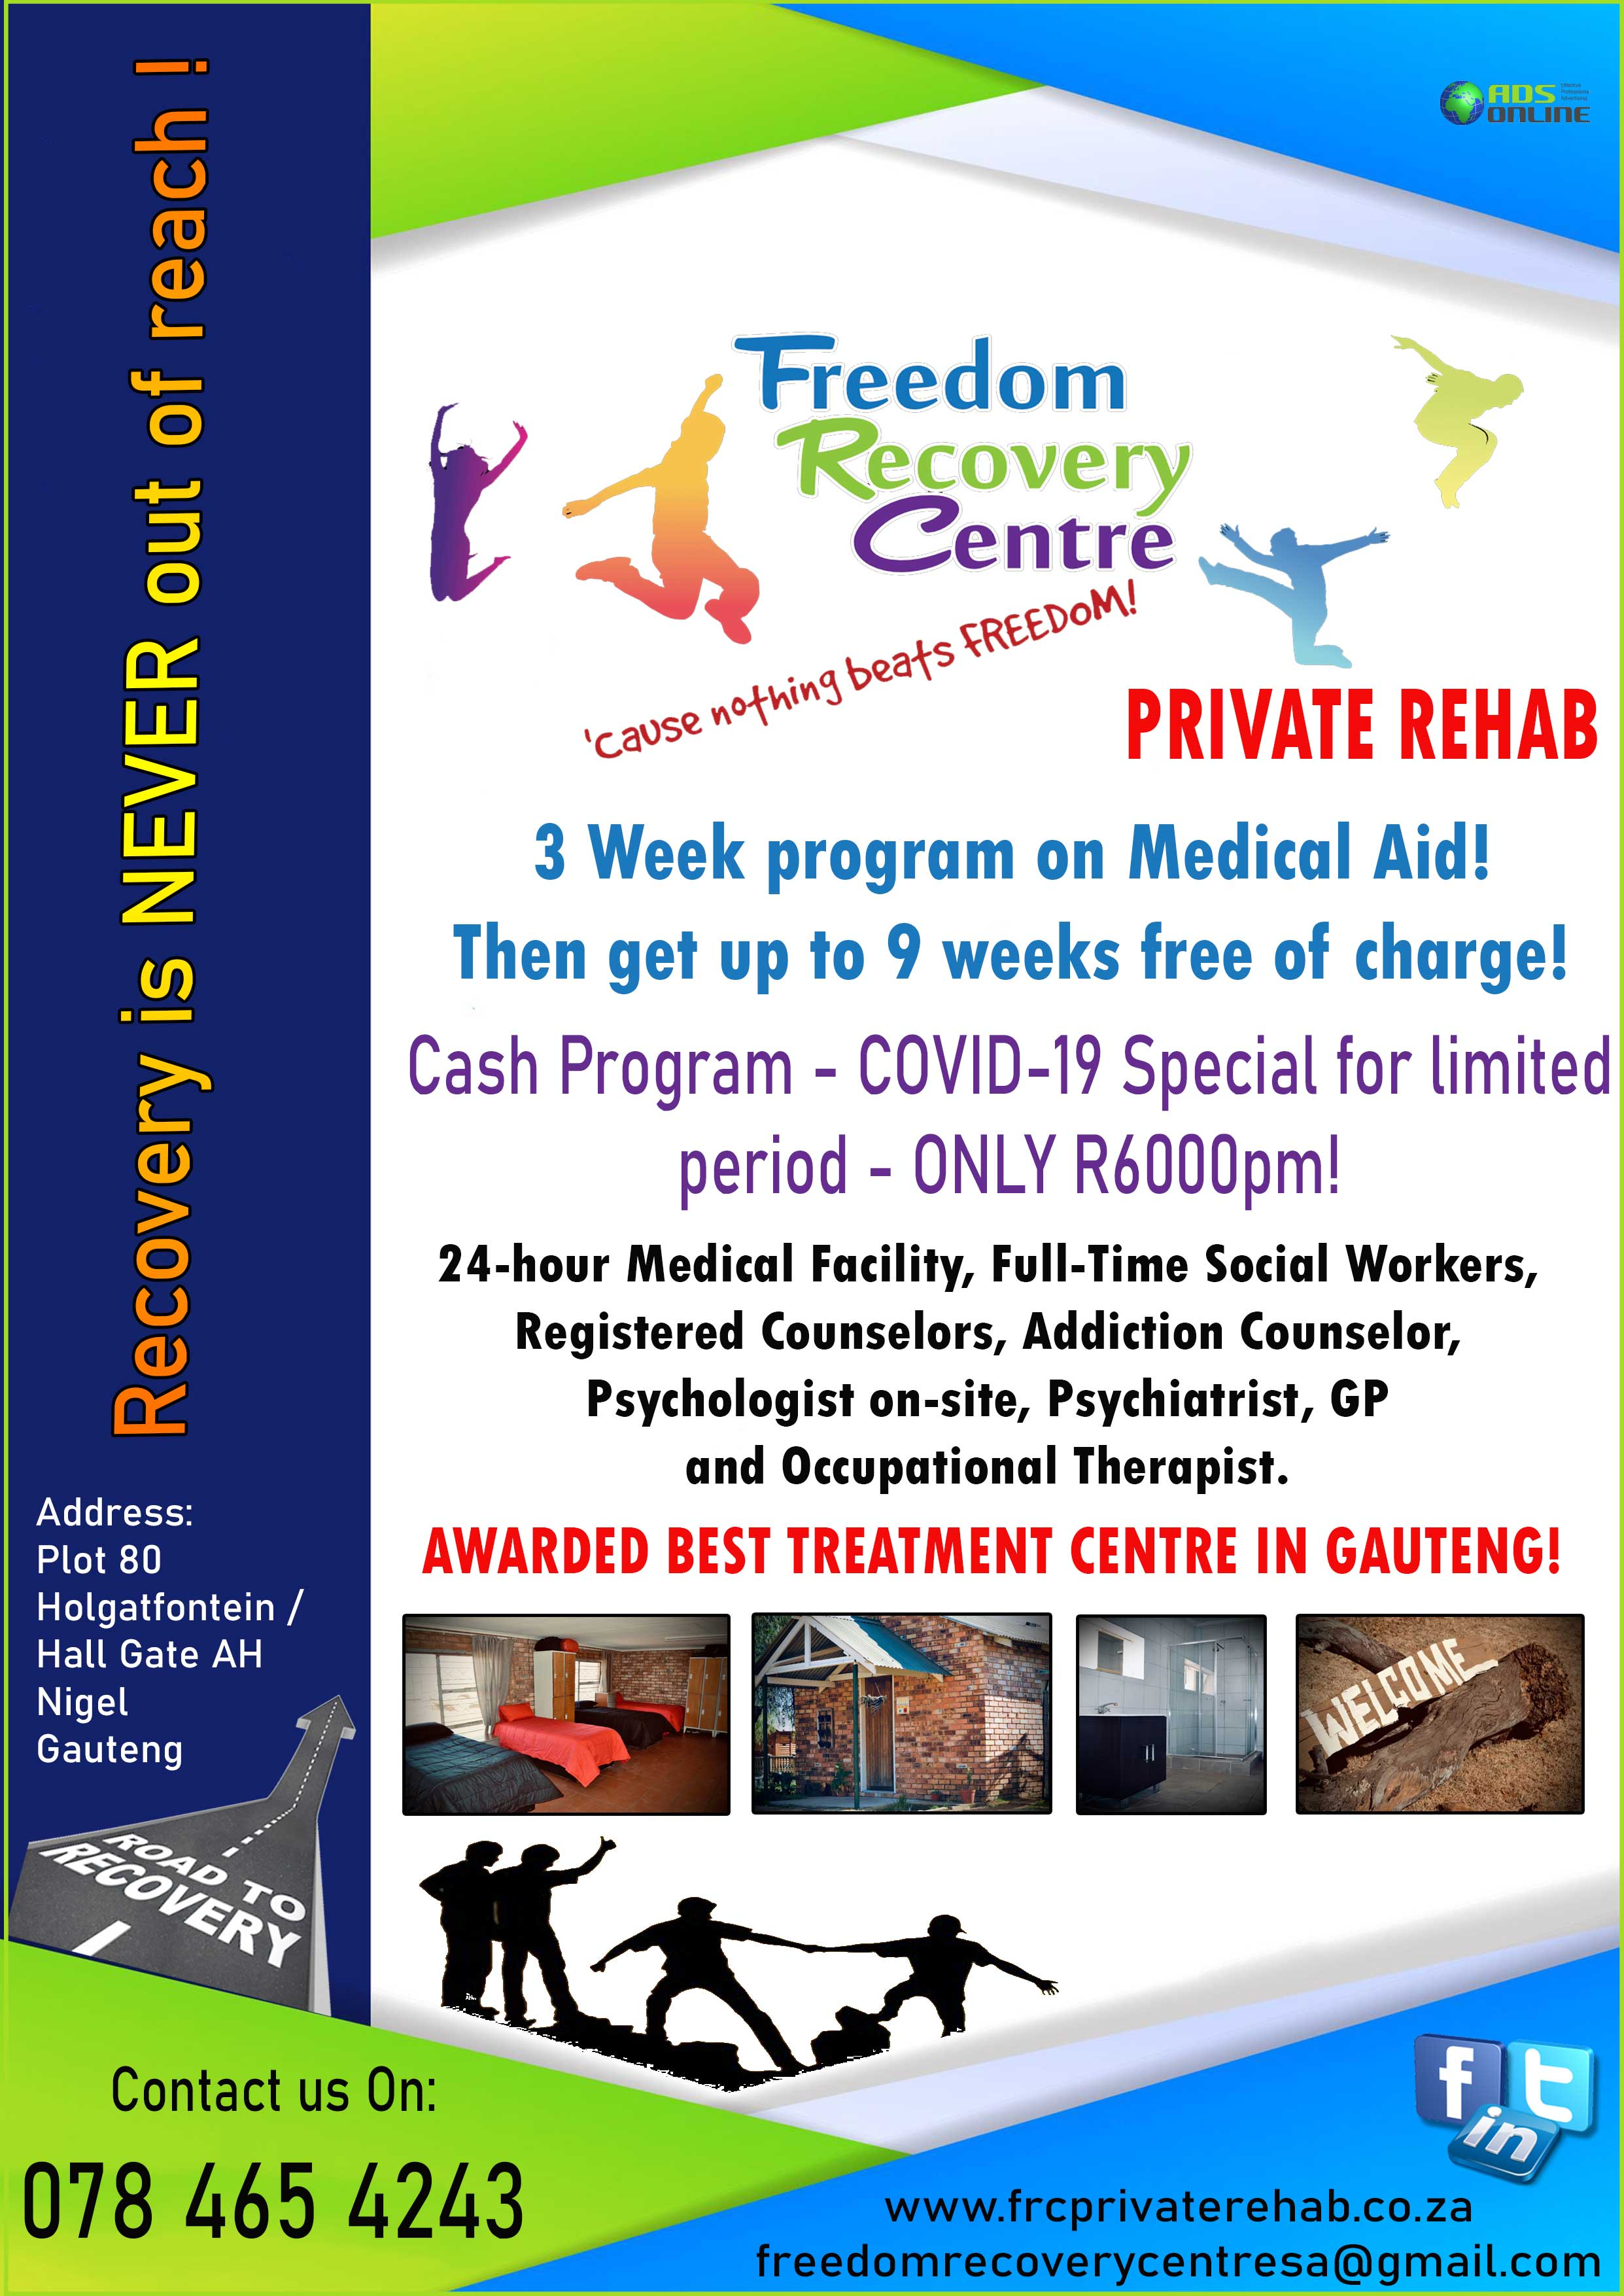 FREEDOM RECOVERY CENTRE – Private Rehab   Nigel Gauteng